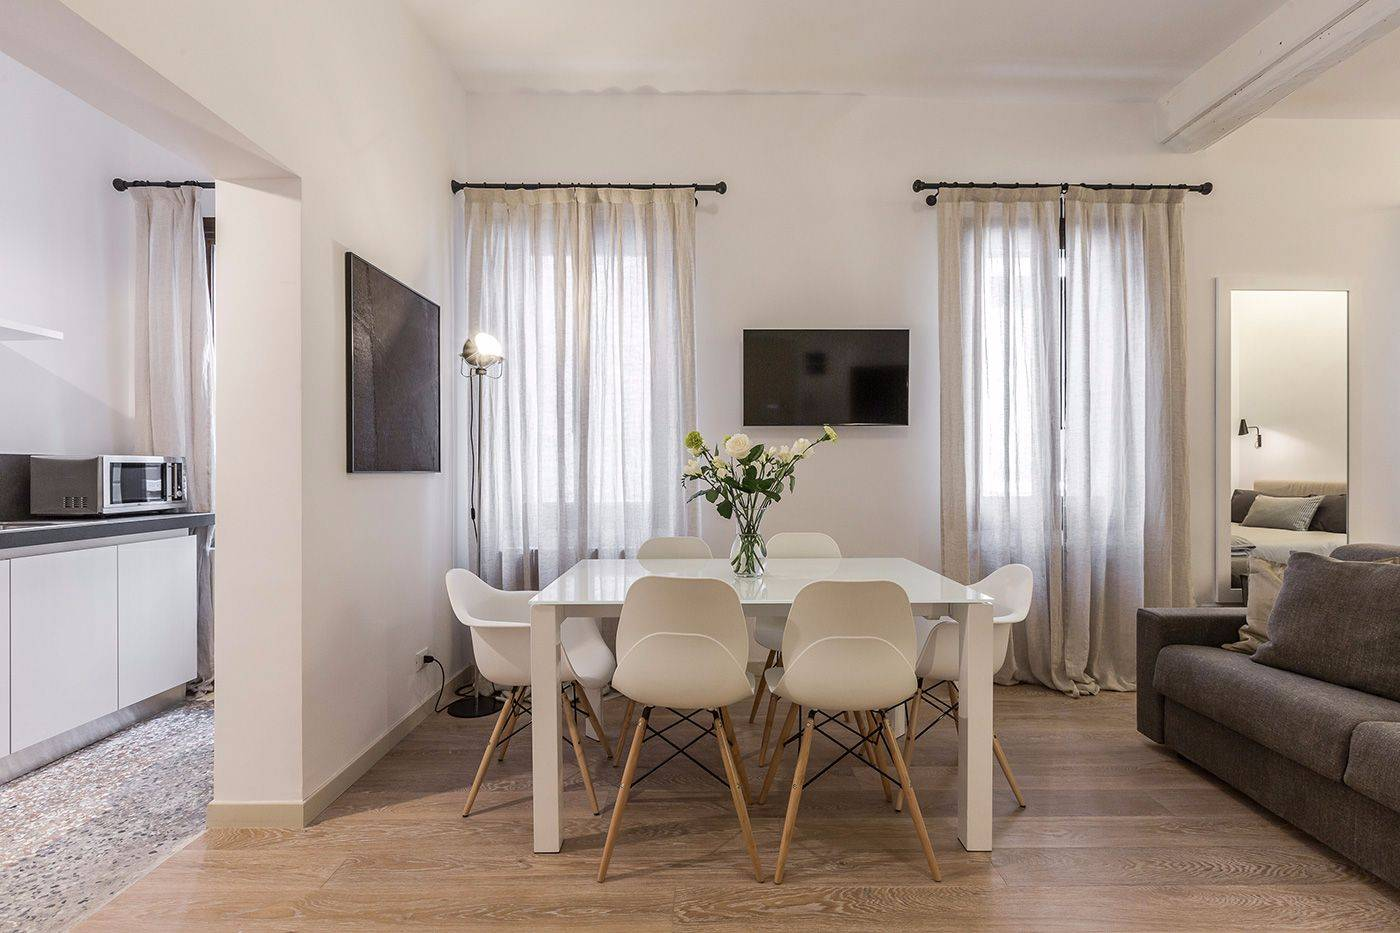 kitchen, dining table, sofa and bed are fitted with style in the studio